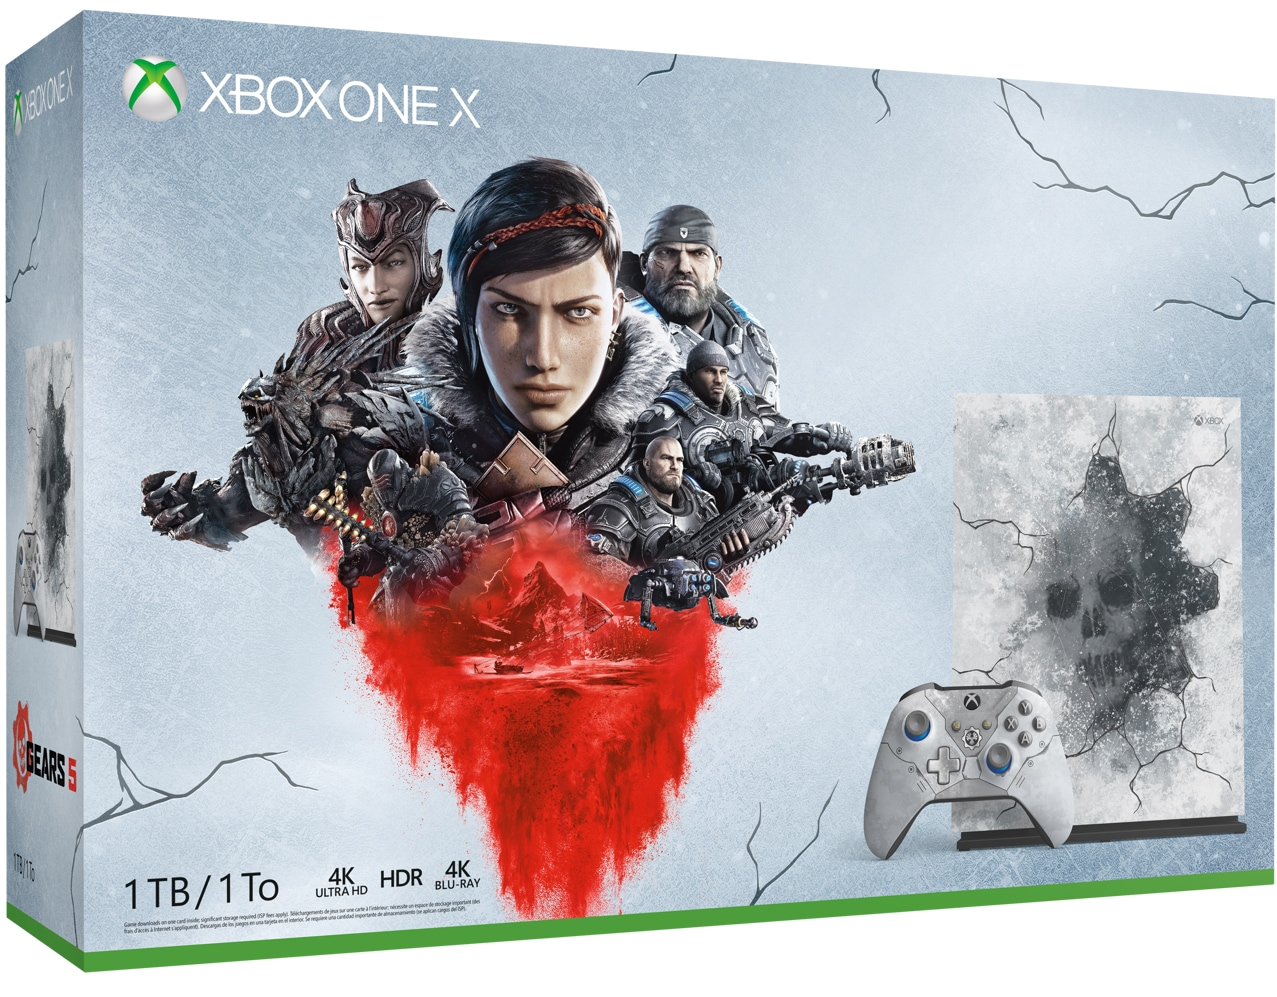 Xbox One X Gears 5 Limited Edition bundle box art